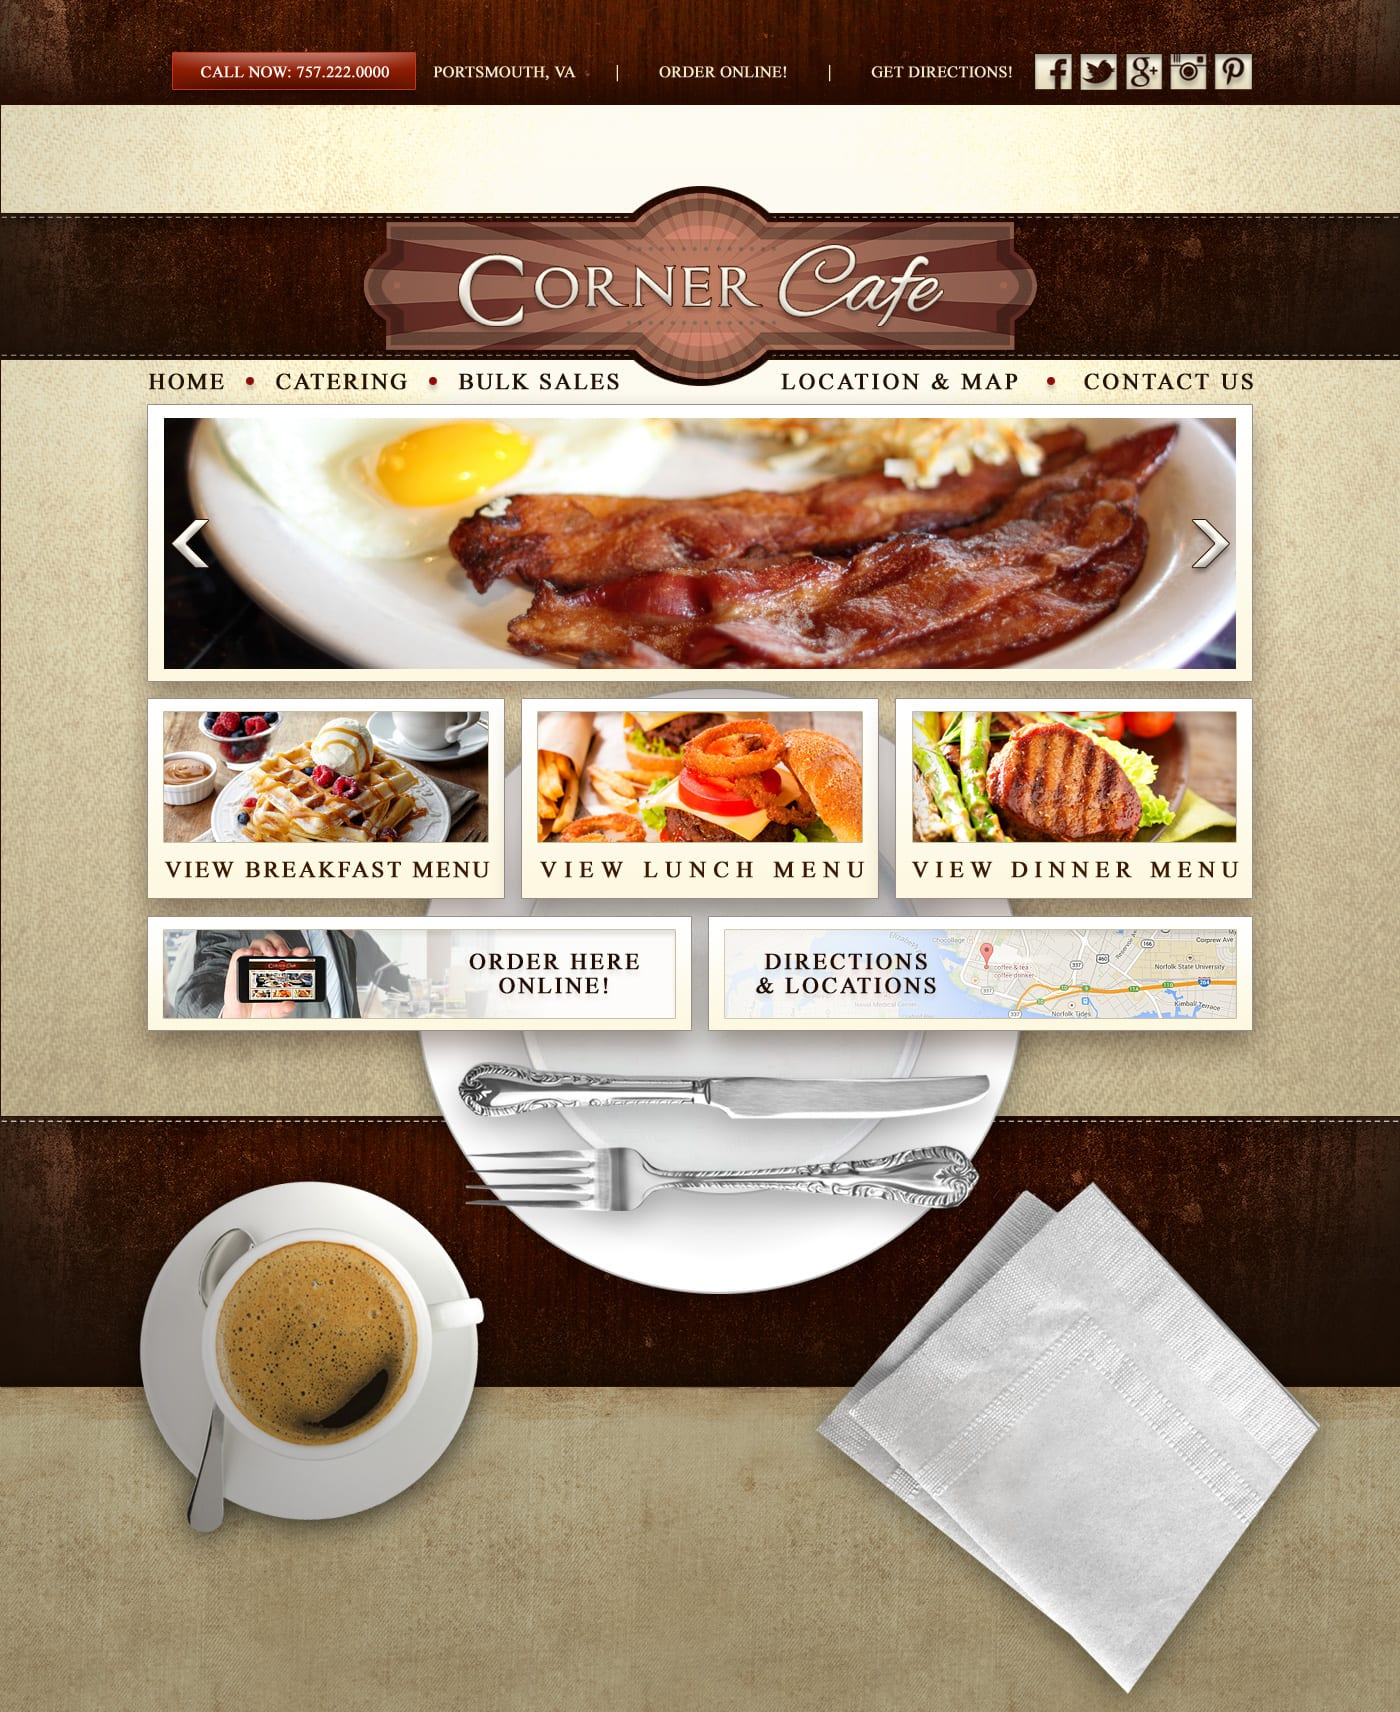 Web design for restaurants and cafes